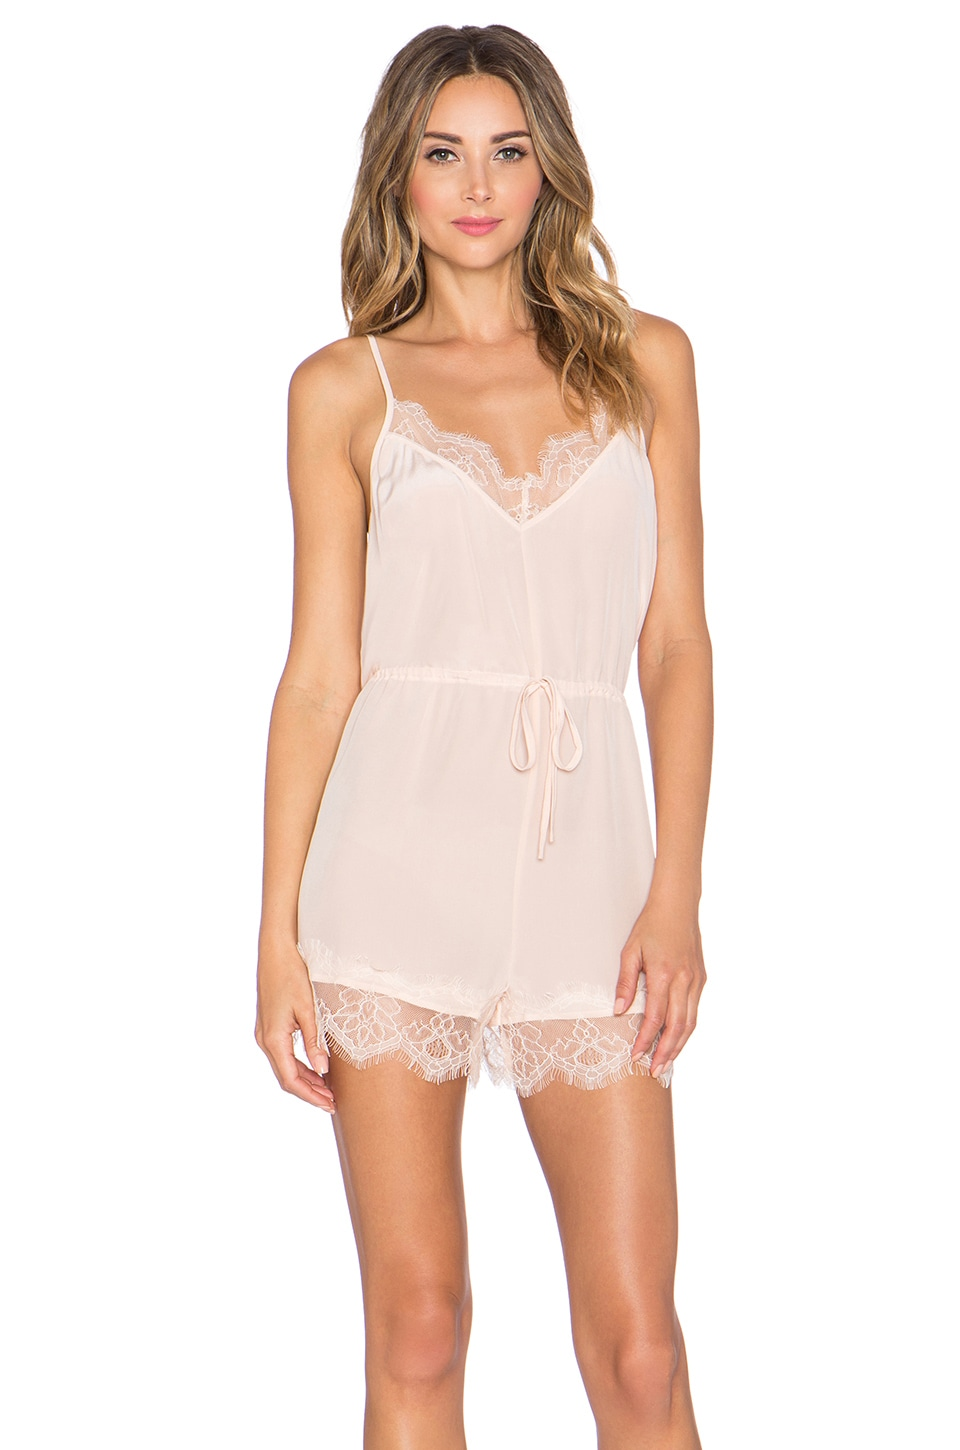 LOFT provides women with the sophisticated and fashion-forward clothing and apparel they needs. LOFT is a division of Ann Taylor offering dresses, seperates, shoes, and accessories to help you create a fresh look from head to toe.